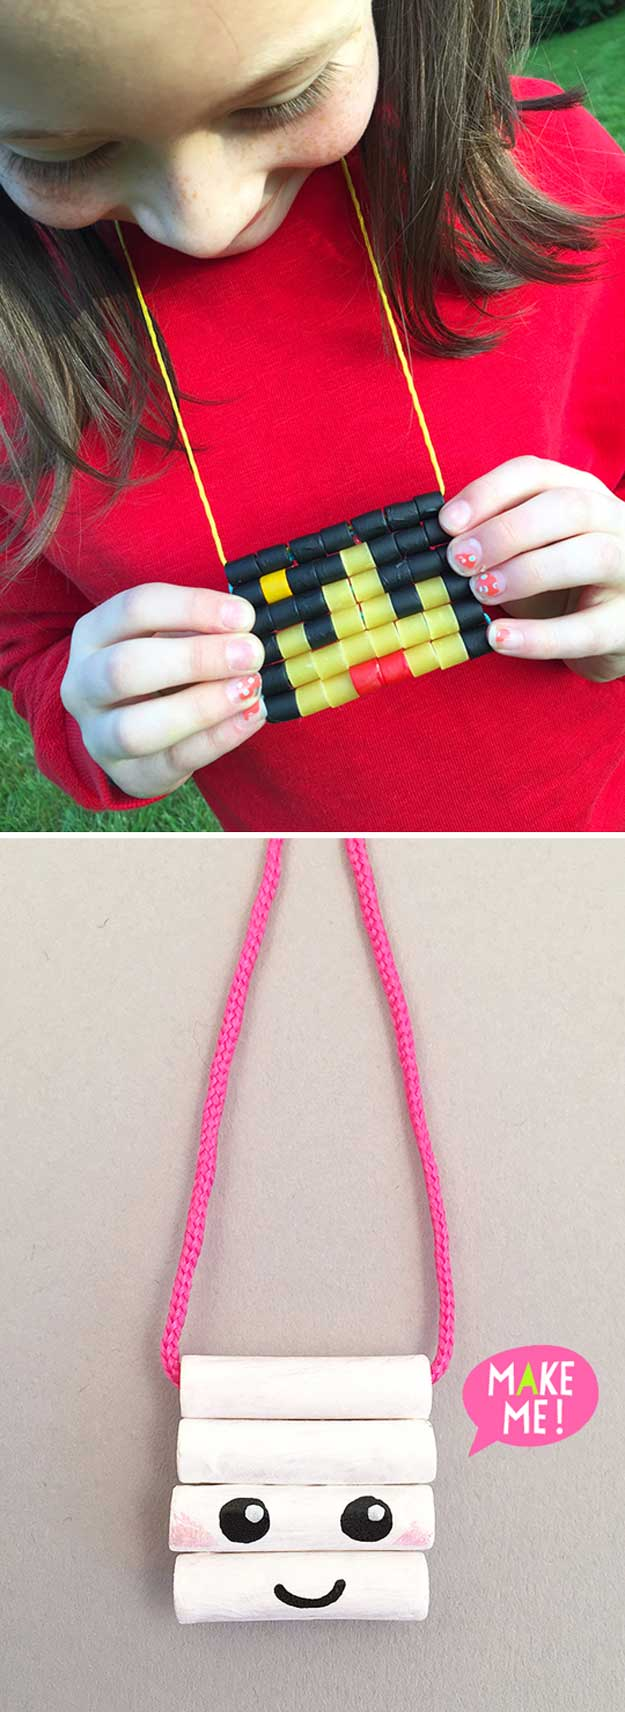 Painted Macaroni Necklaces   22 Cheap DIY Jewelry Projects for Girls